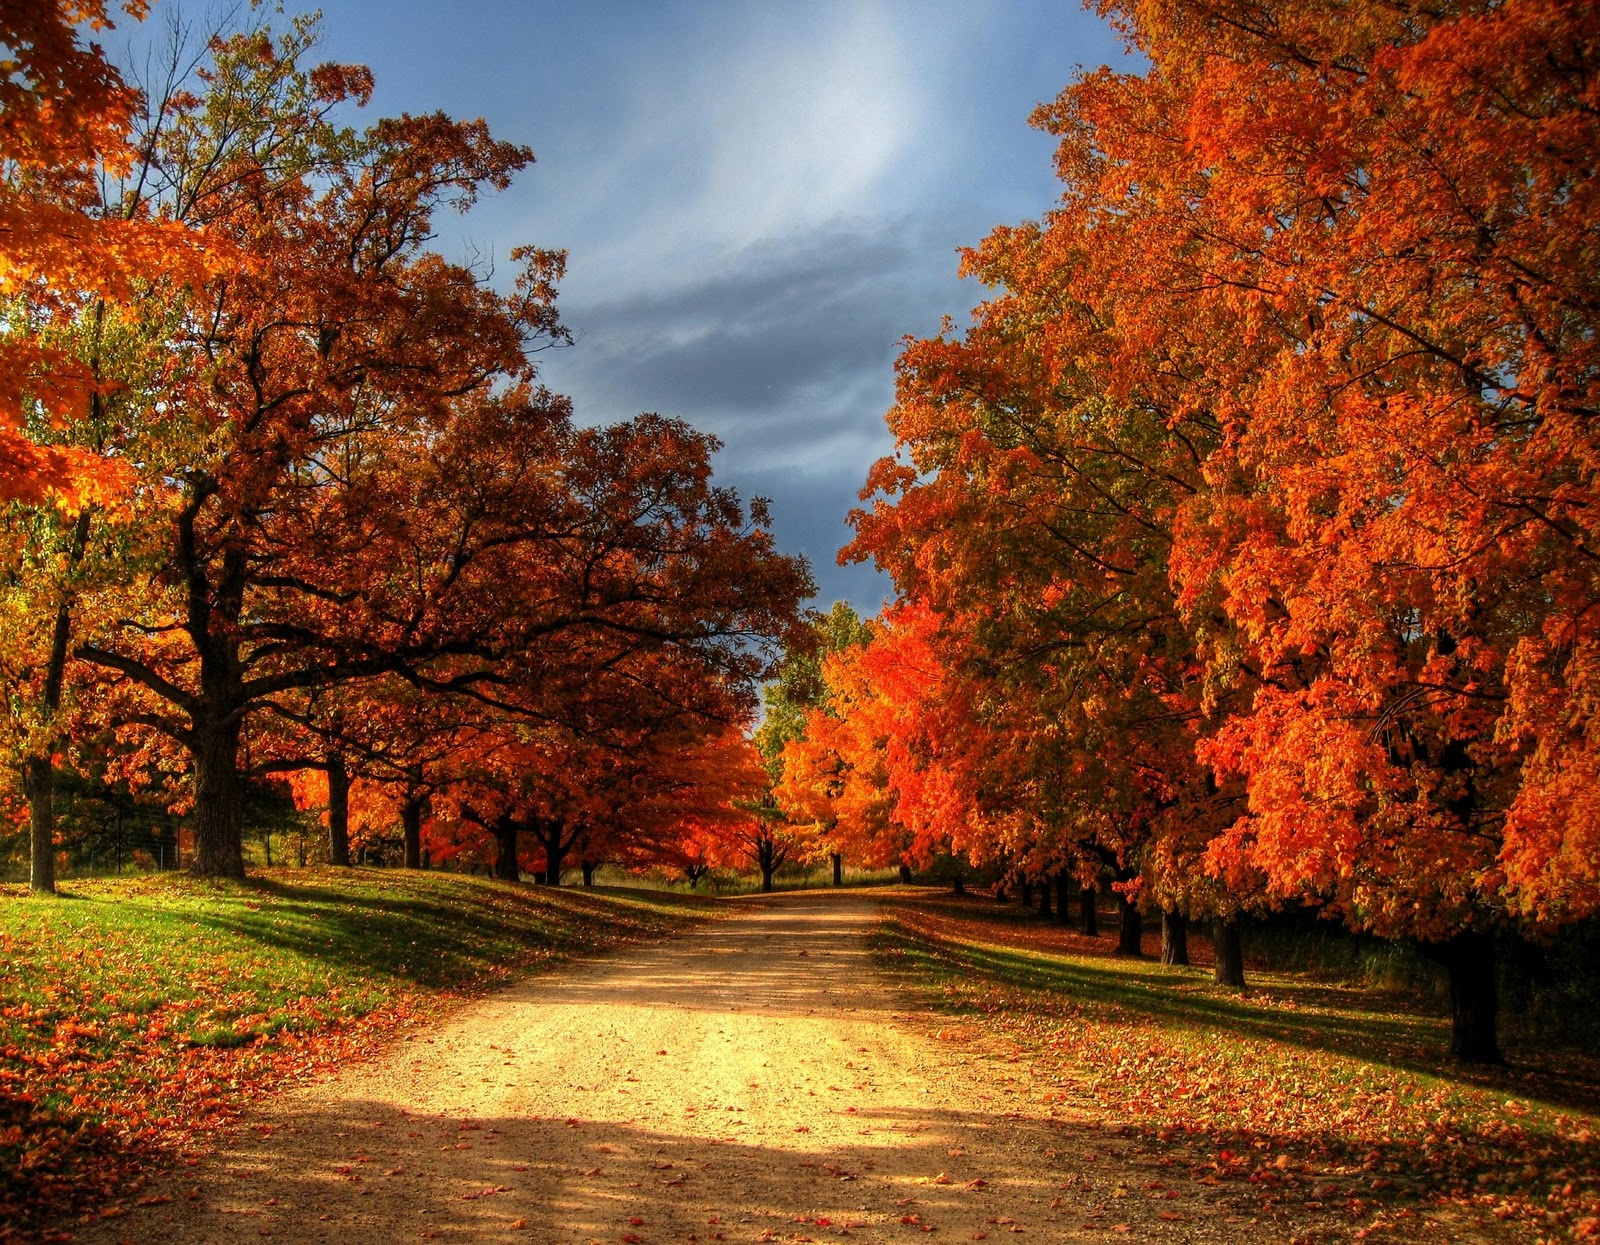 leaves autumn fall faith hope trees scenes autum colors season scene foliage fallen night falling country summer winter road beauty